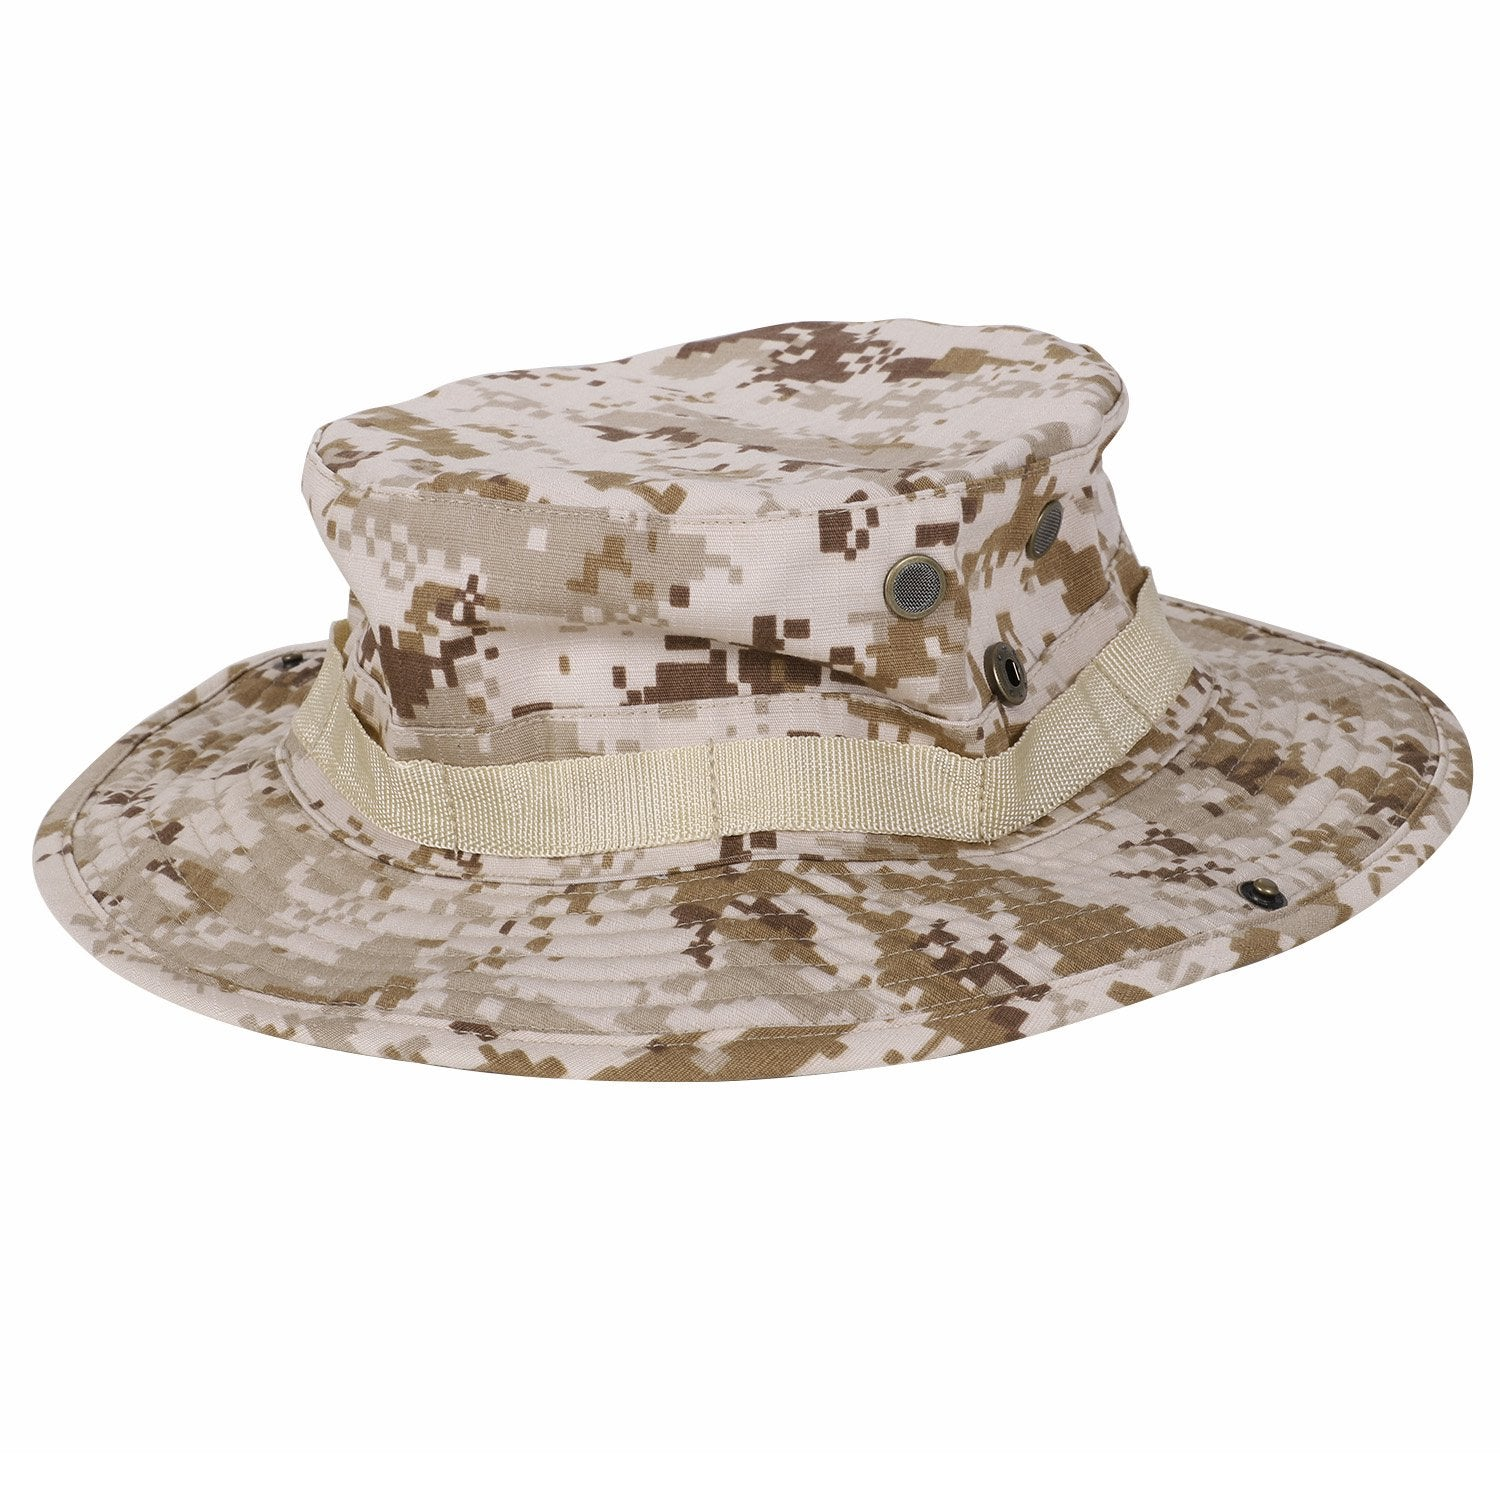 1192234bec1 Fishing Hat Boonie Fisherman Rounded Sun Protection Hat Outdoor ...